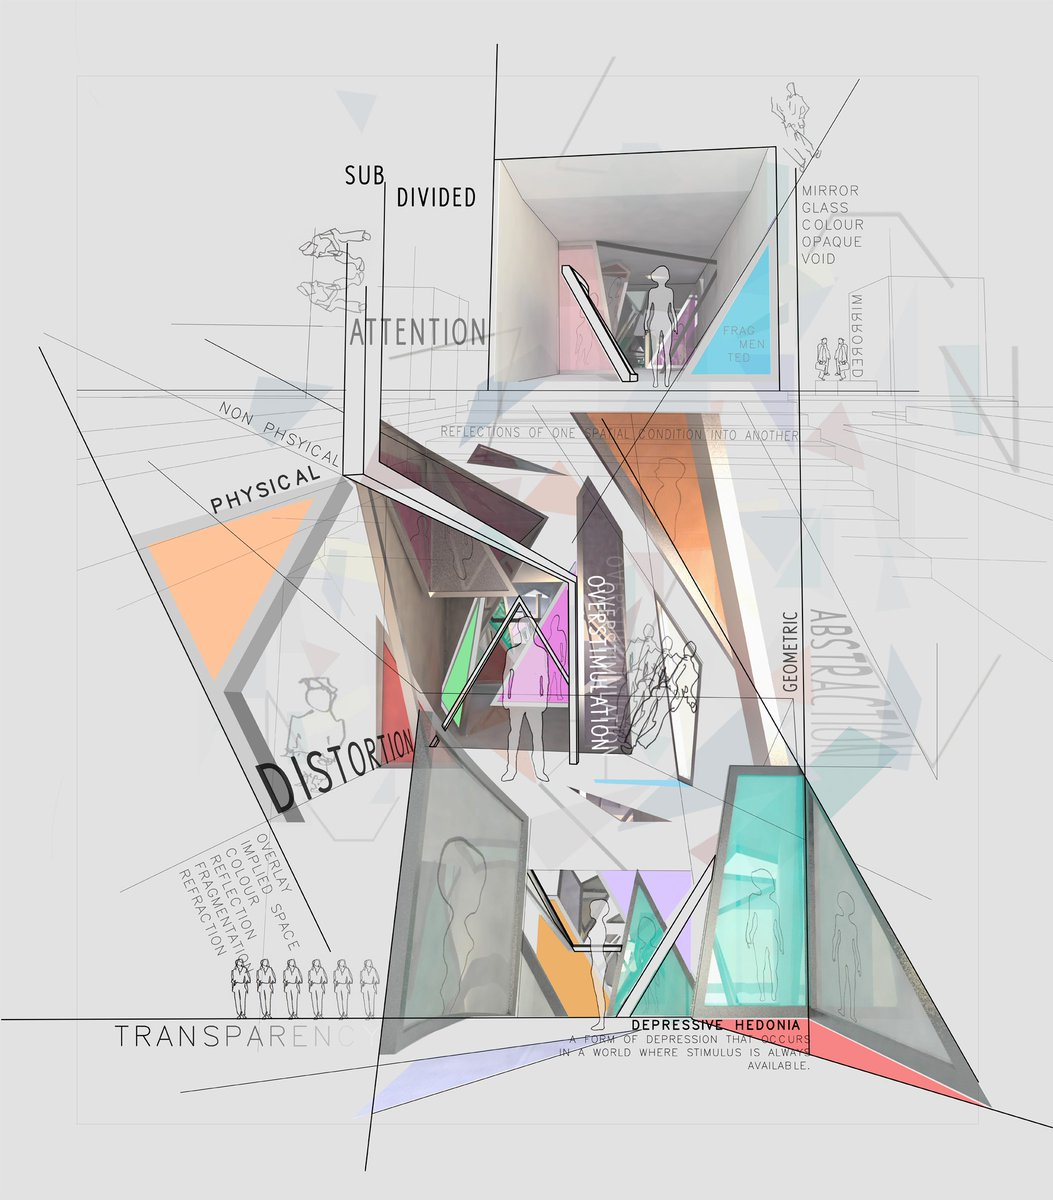 Monash Art Design And Architecture On Twitter Stimulation Abstraction Fragmentation Steph Worboys Master S Of Architecture Final Year Project Combines Visual Art And Graphic Design With Architecture To Visualise Spatial Distortion Https